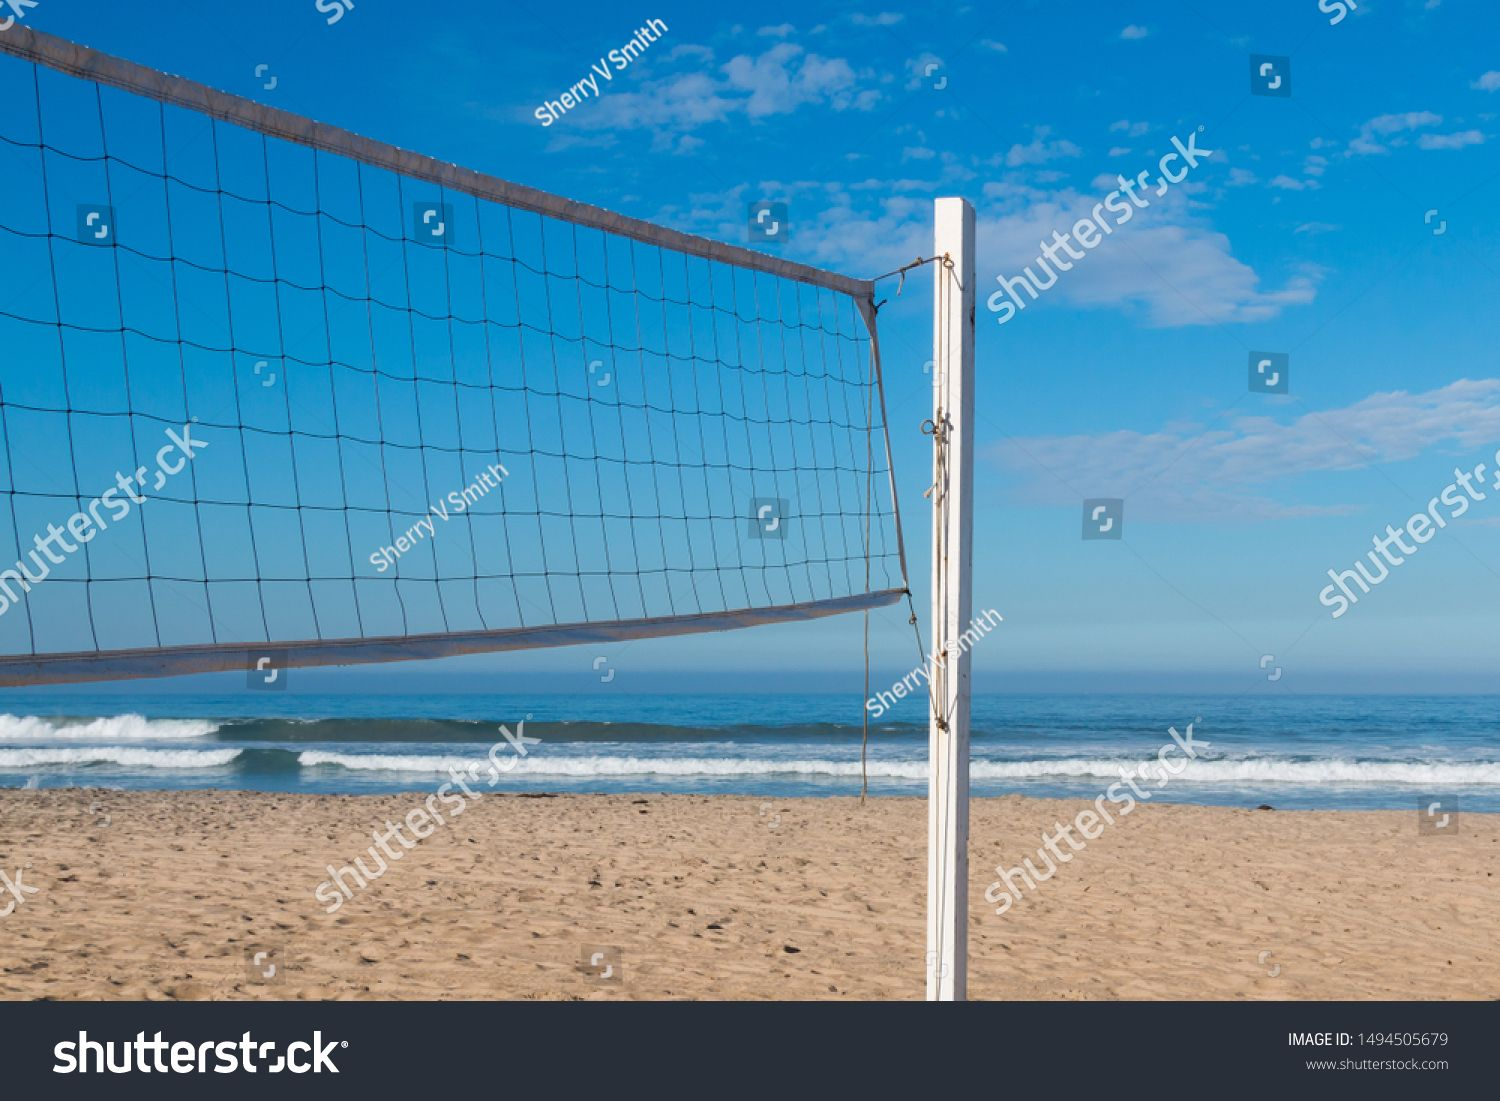 Volleyball Net On A Beach Sand Court With The Ocean In The Background Ad Ad Beach Net Volleyball Sand In 2020 Beach Sand Beach White Stock Image